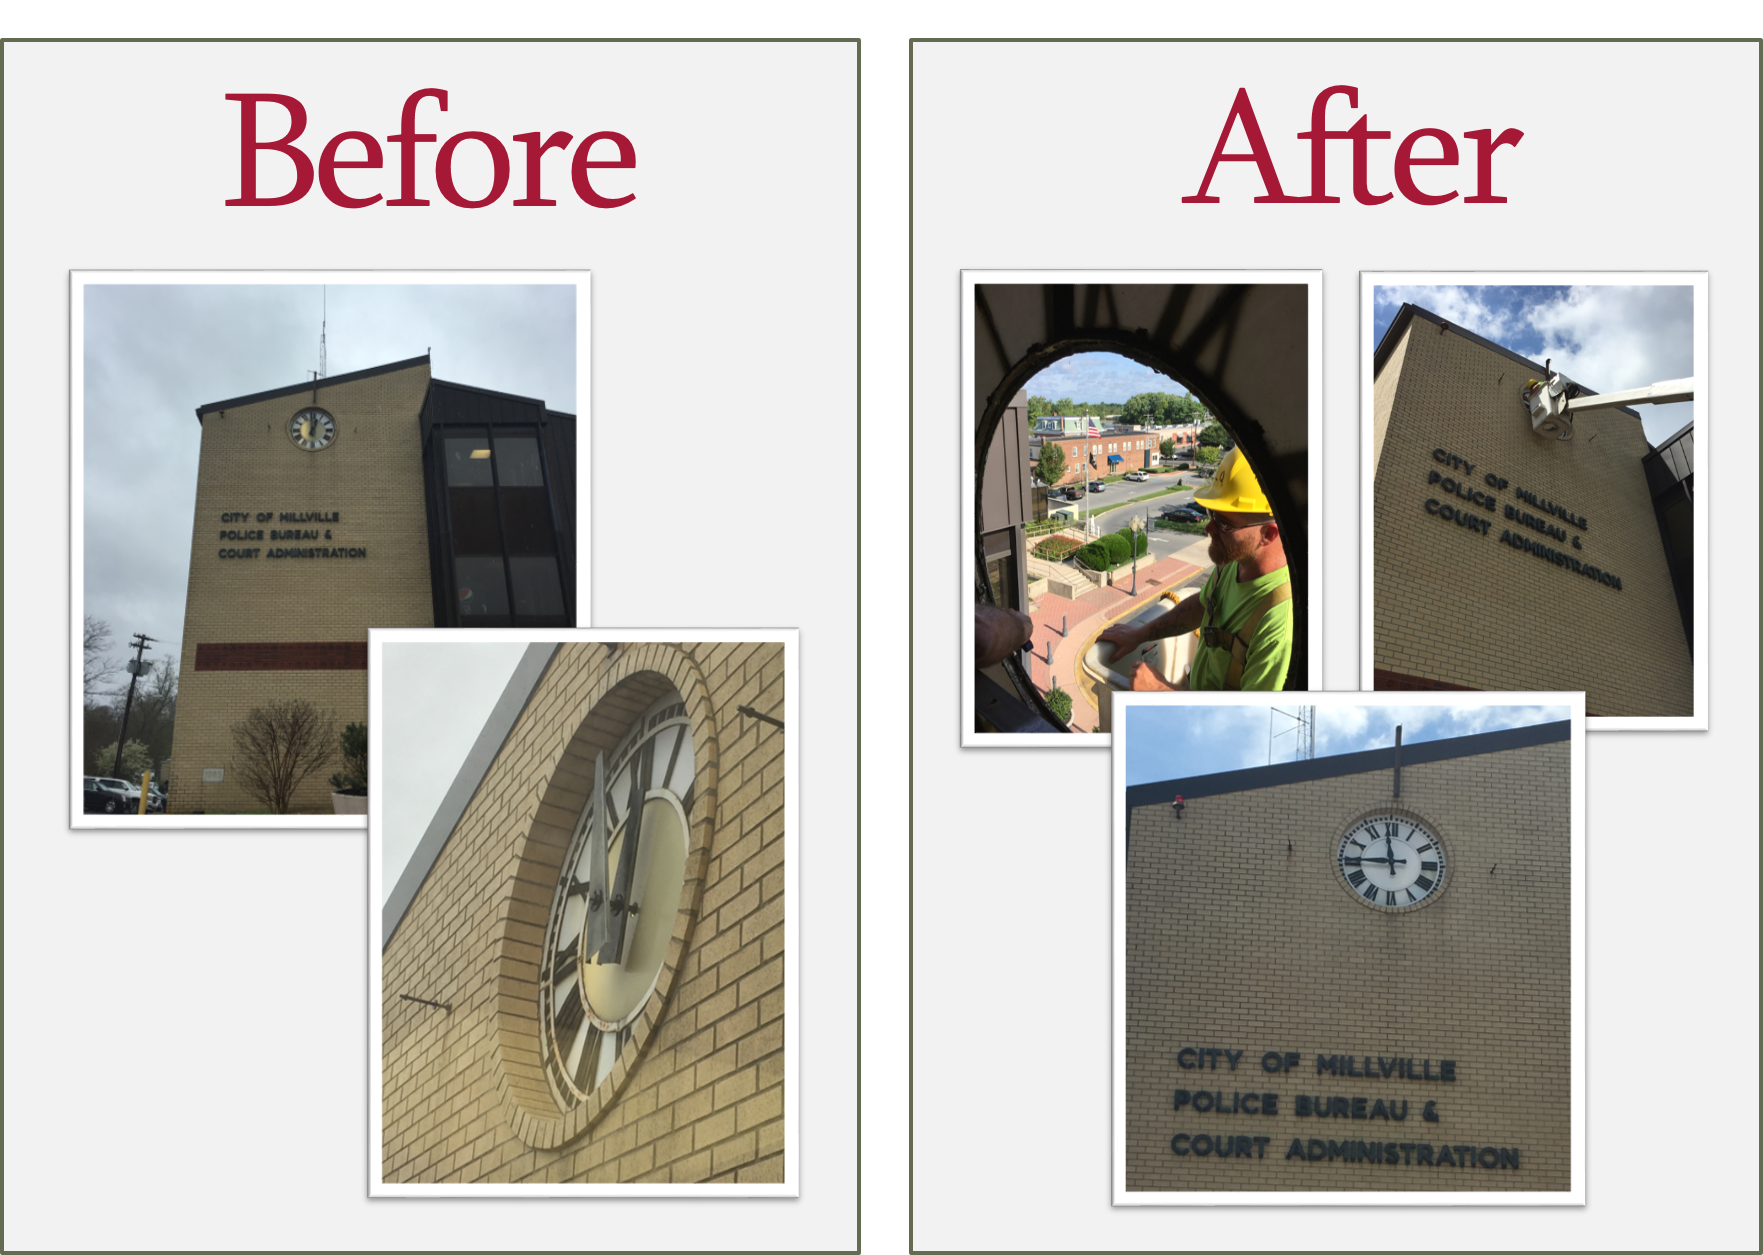 millville_clock_before_after